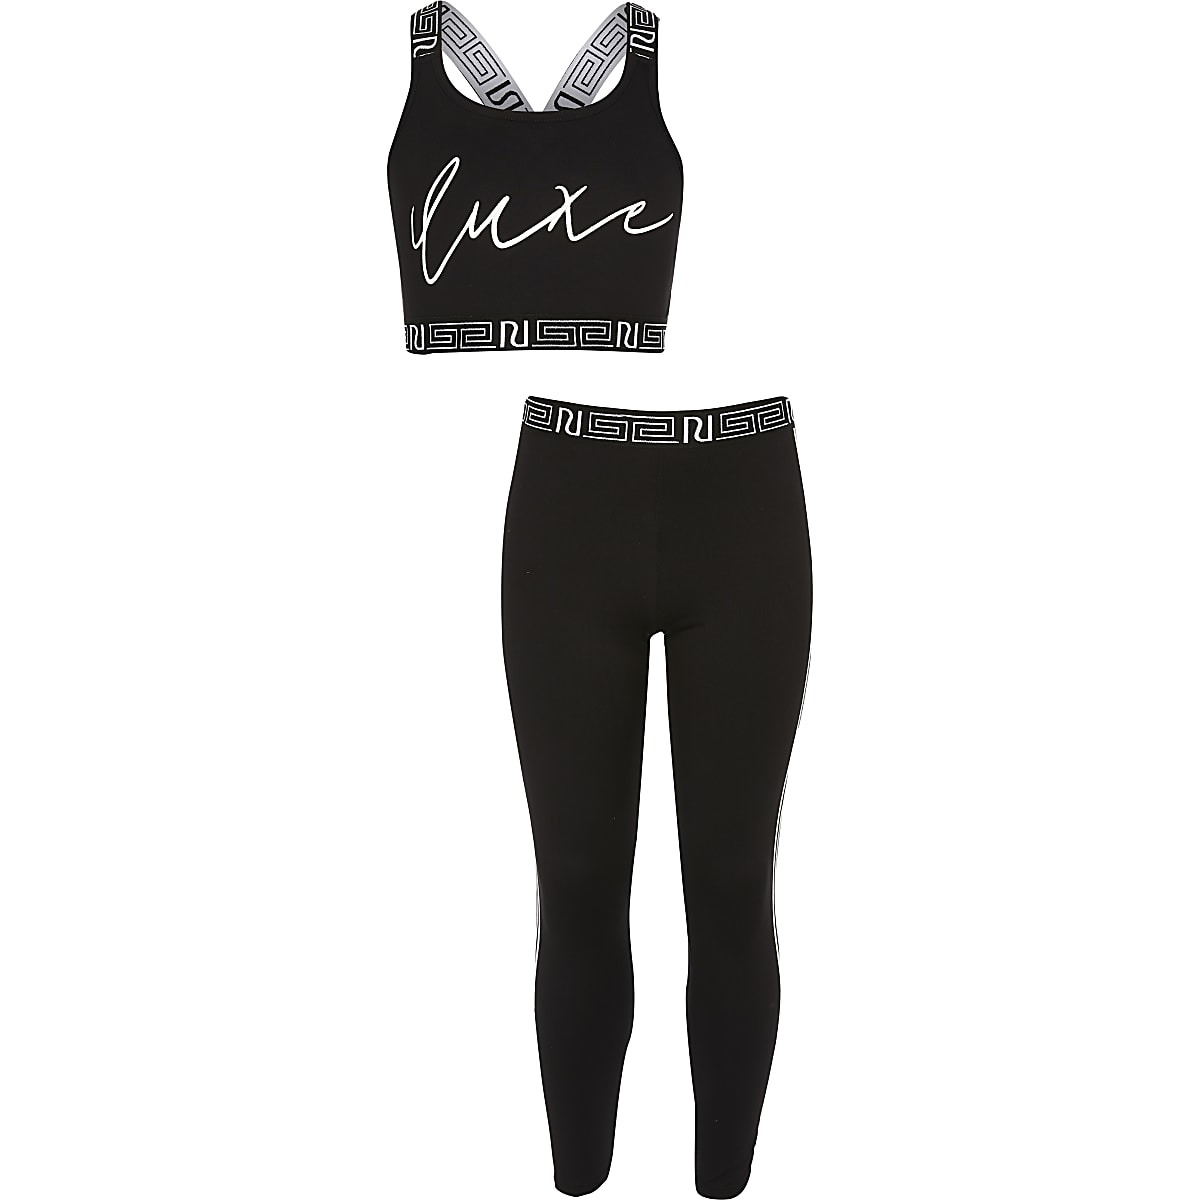 Girls RI Active black crop top outfit